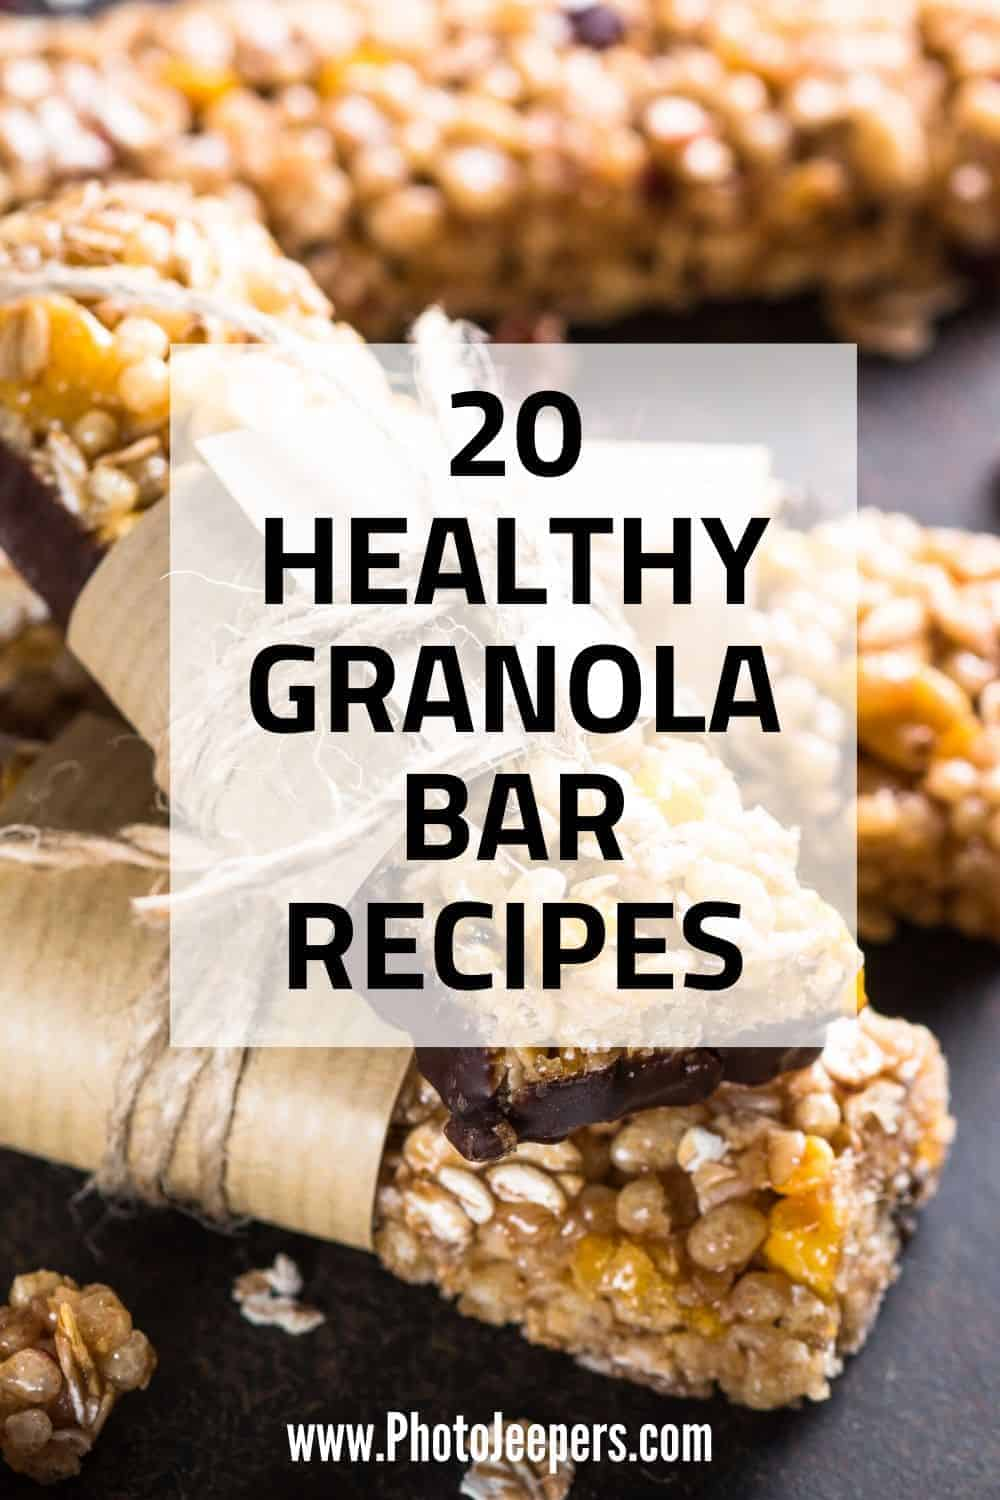 Looking for a healthy road trip snack? Here's a list of 20 healthy granola bar recipes for travel or hiking. Make your own healthy granola bars to cut out the sugar you'll find in store bought bars. Healthy granola bars are perfect for travel, road trip or hiking snacks. #travel #granolabars #healthysnack #photojeepers